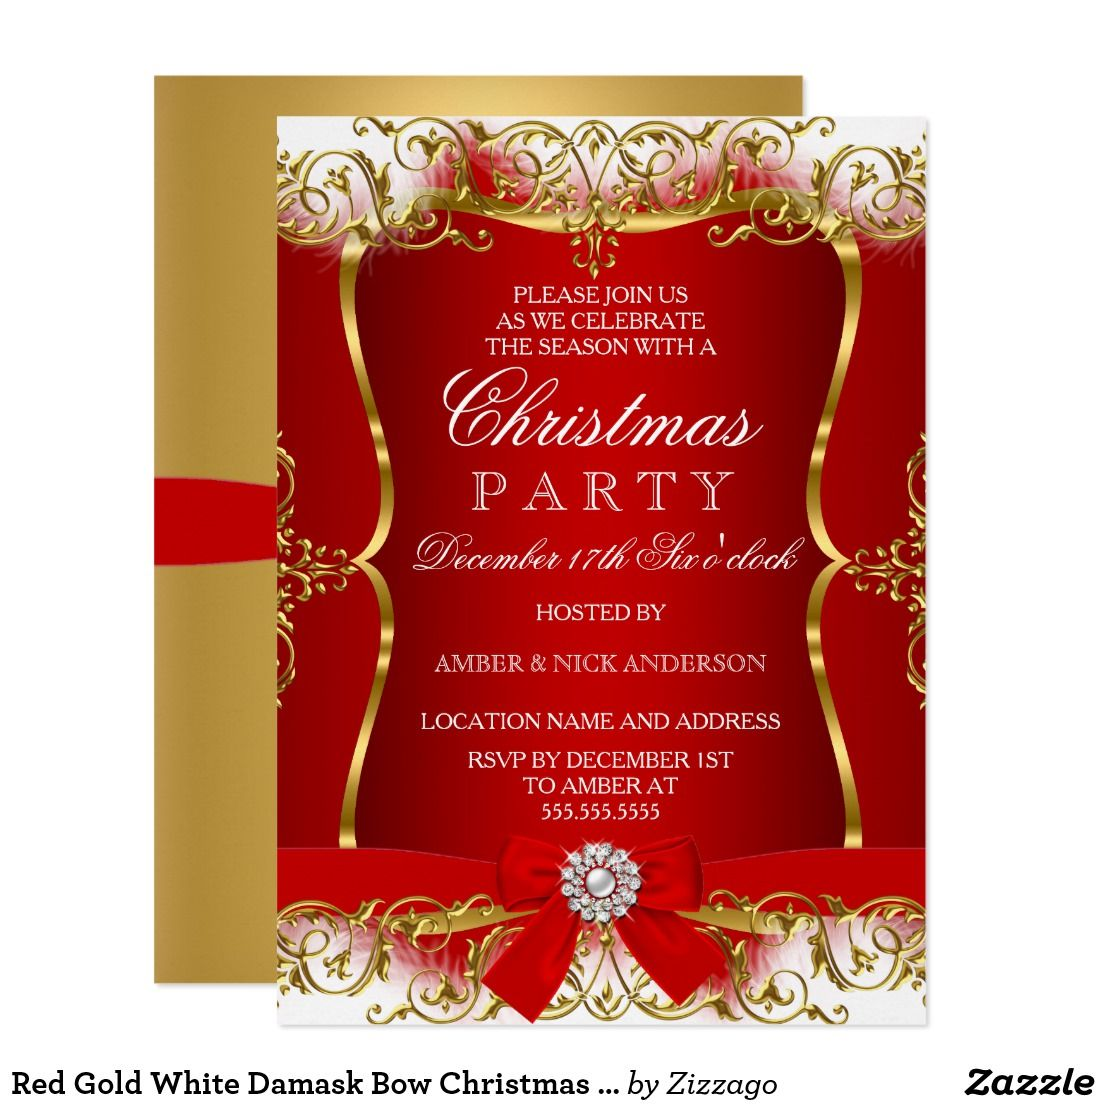 Red Gold White Damask Bow Christmas Party Invite   Christmas ...